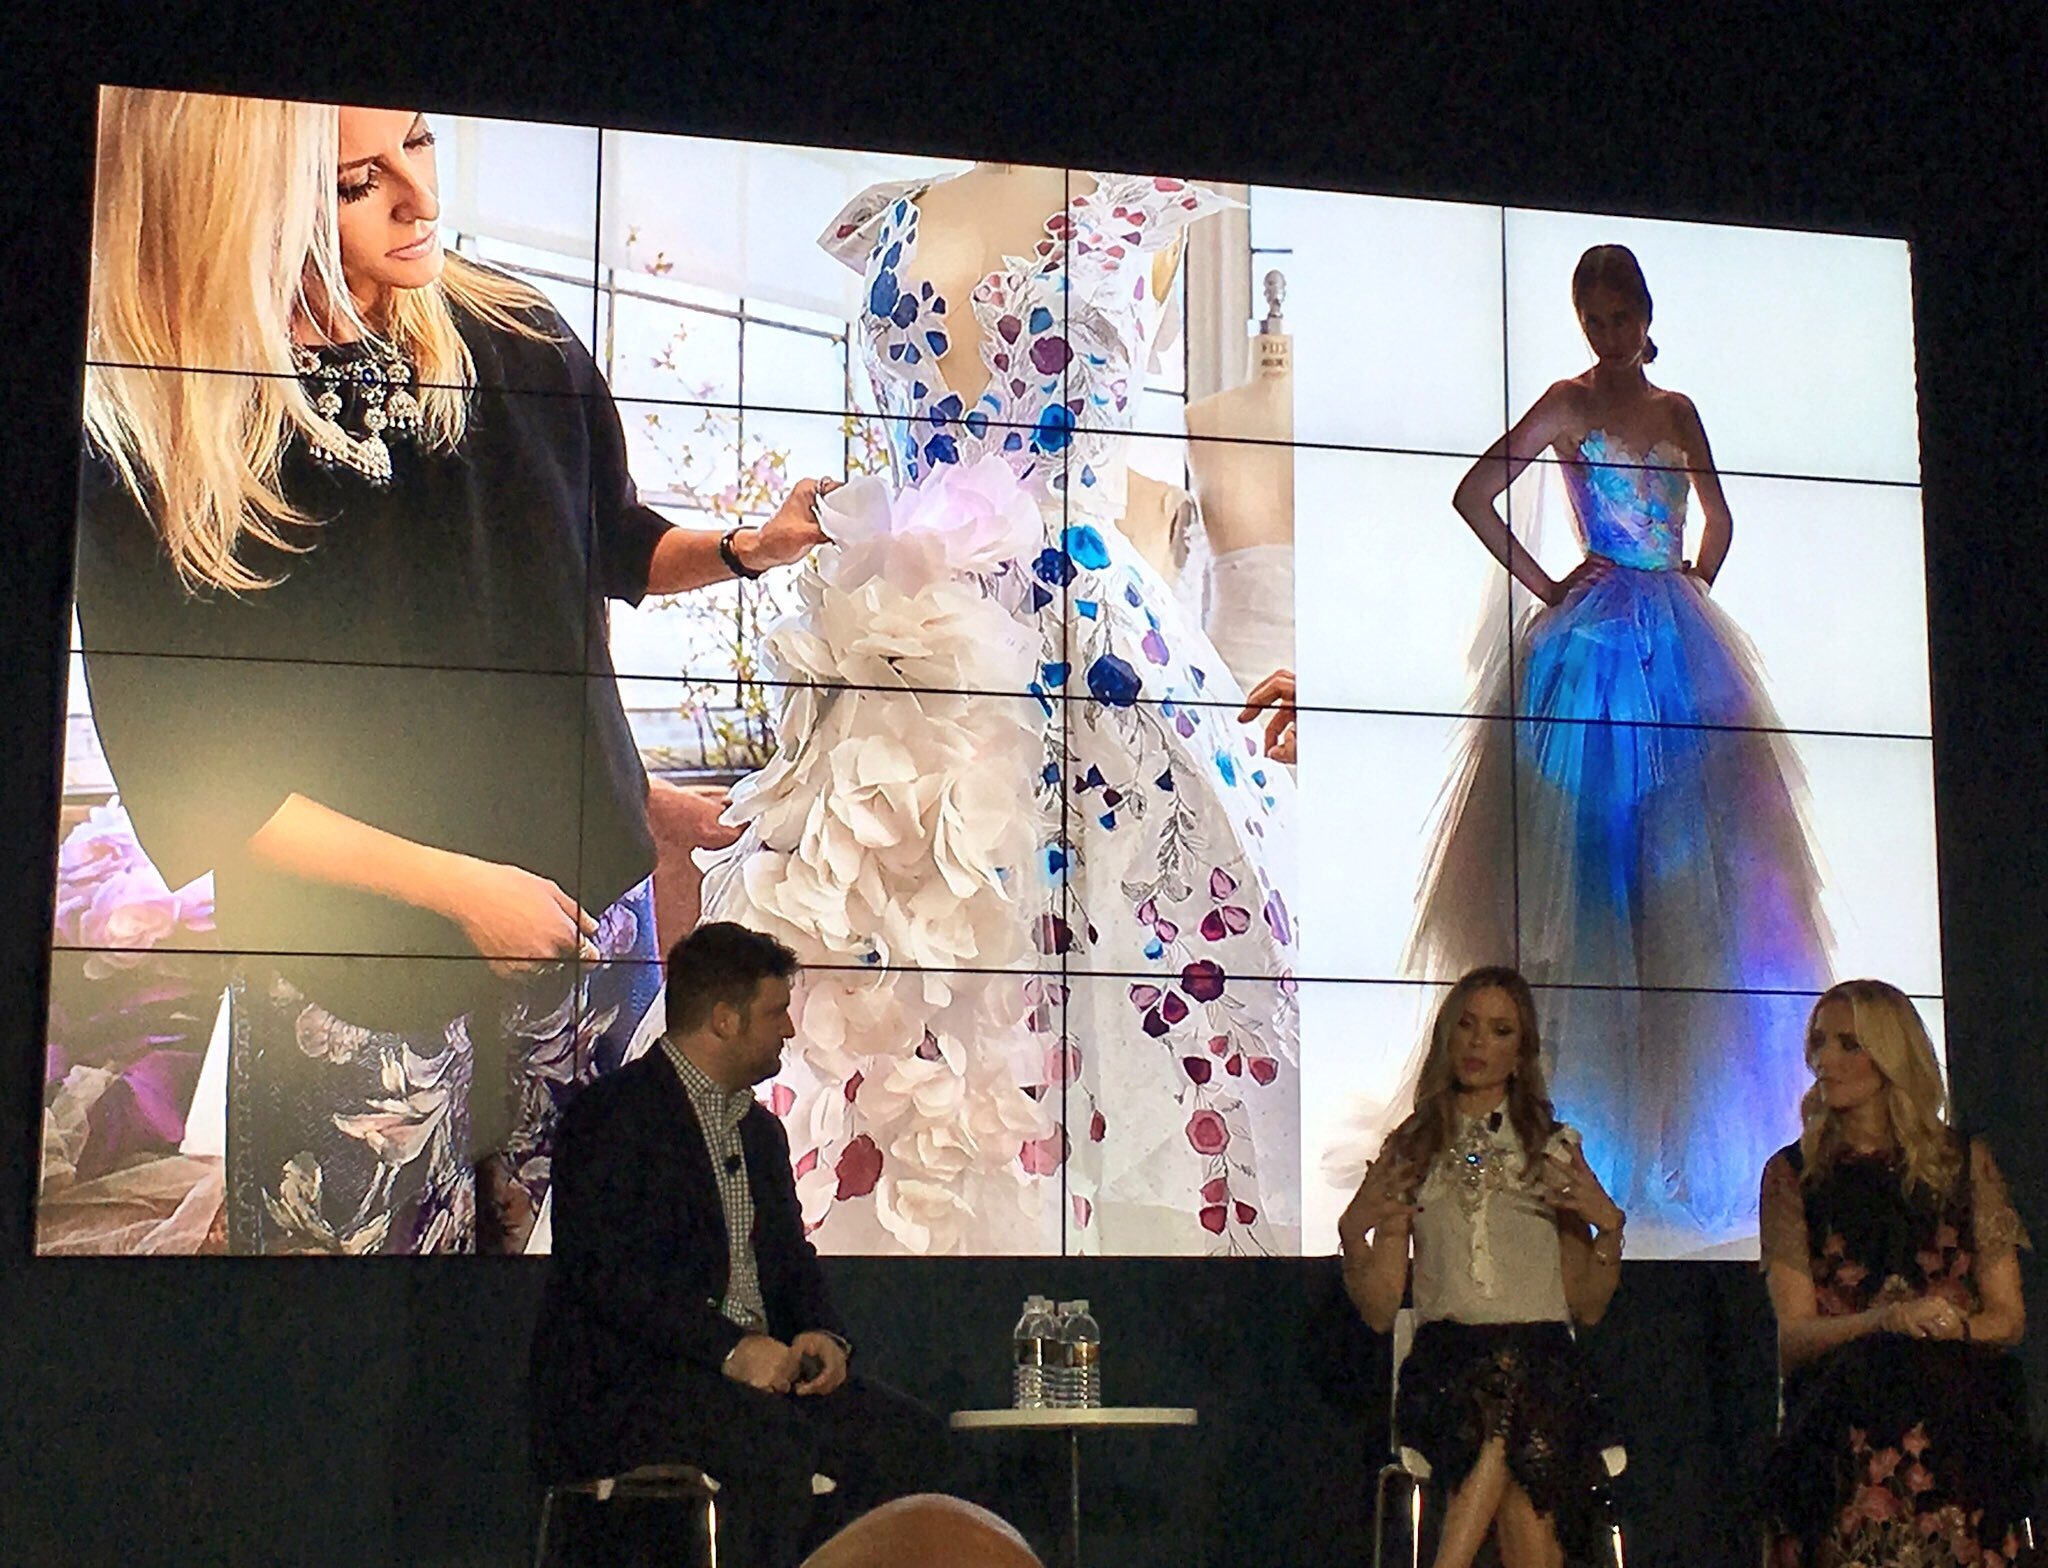 Totally fangirl'd seeing the designers of @marchesa and hearing how the #Cognitive dress came to life!! #ibmwow https://t.co/uiXbMAjOPO